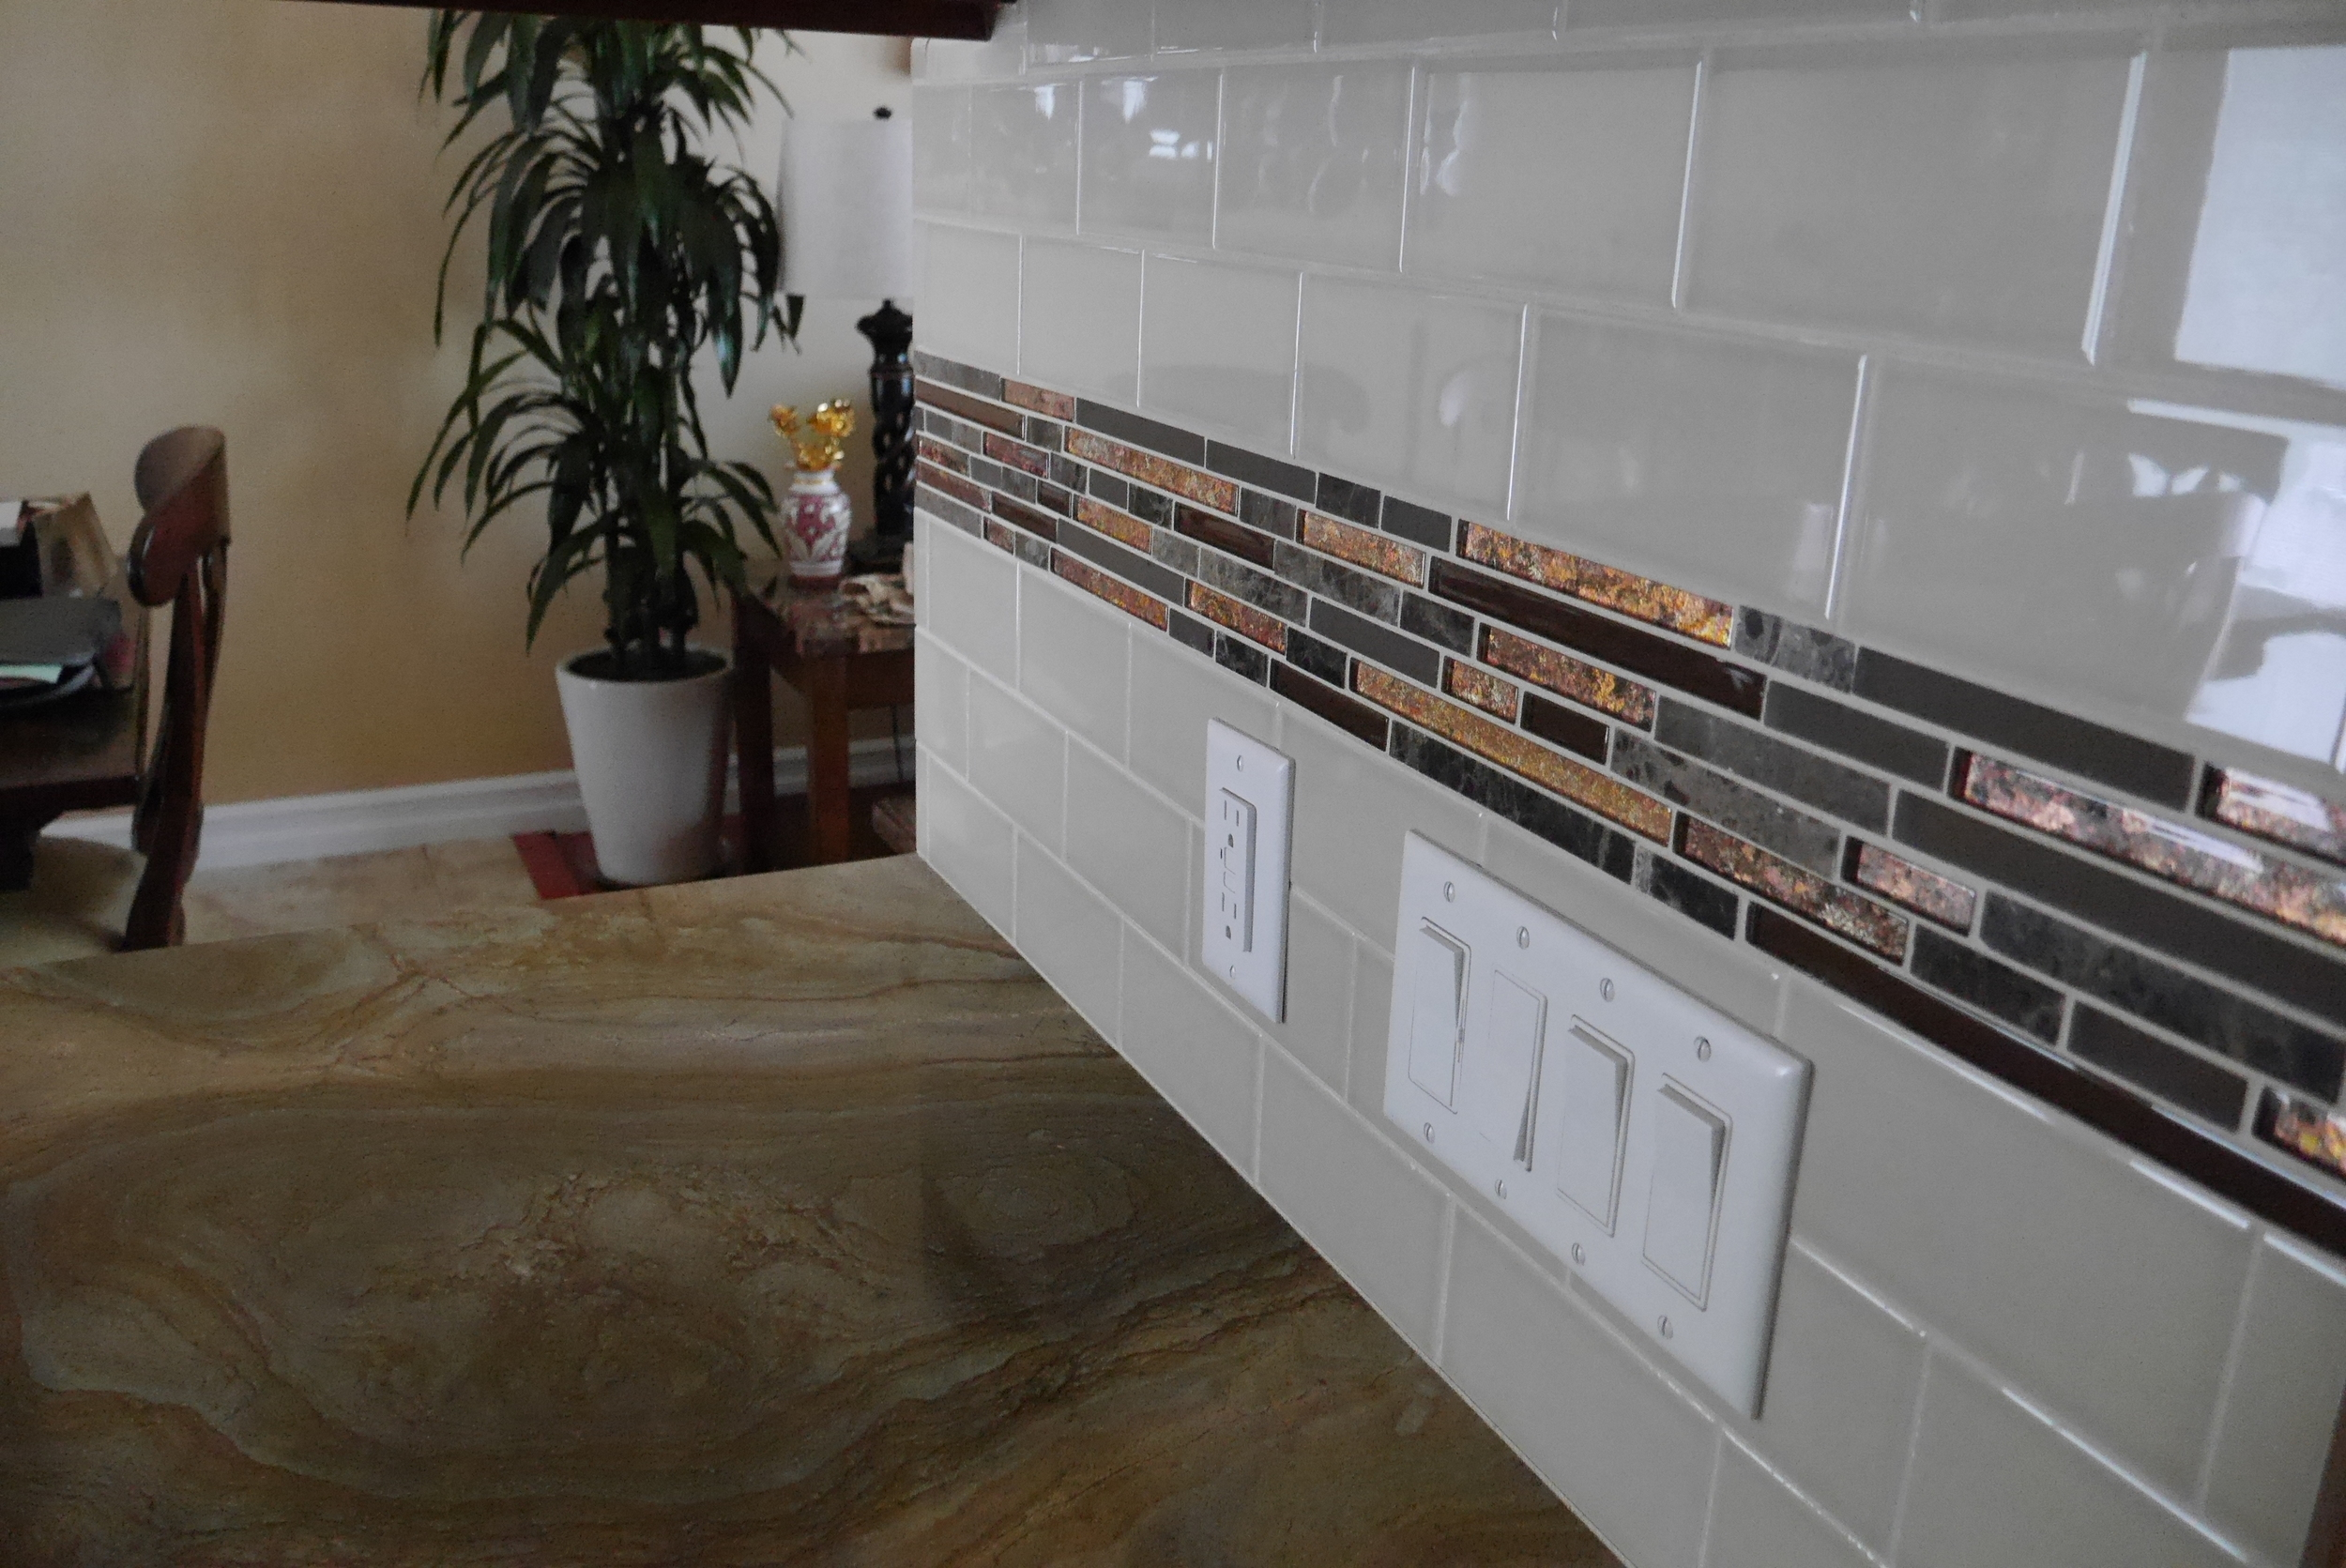 Backsplash installation by Groundswell Contracting